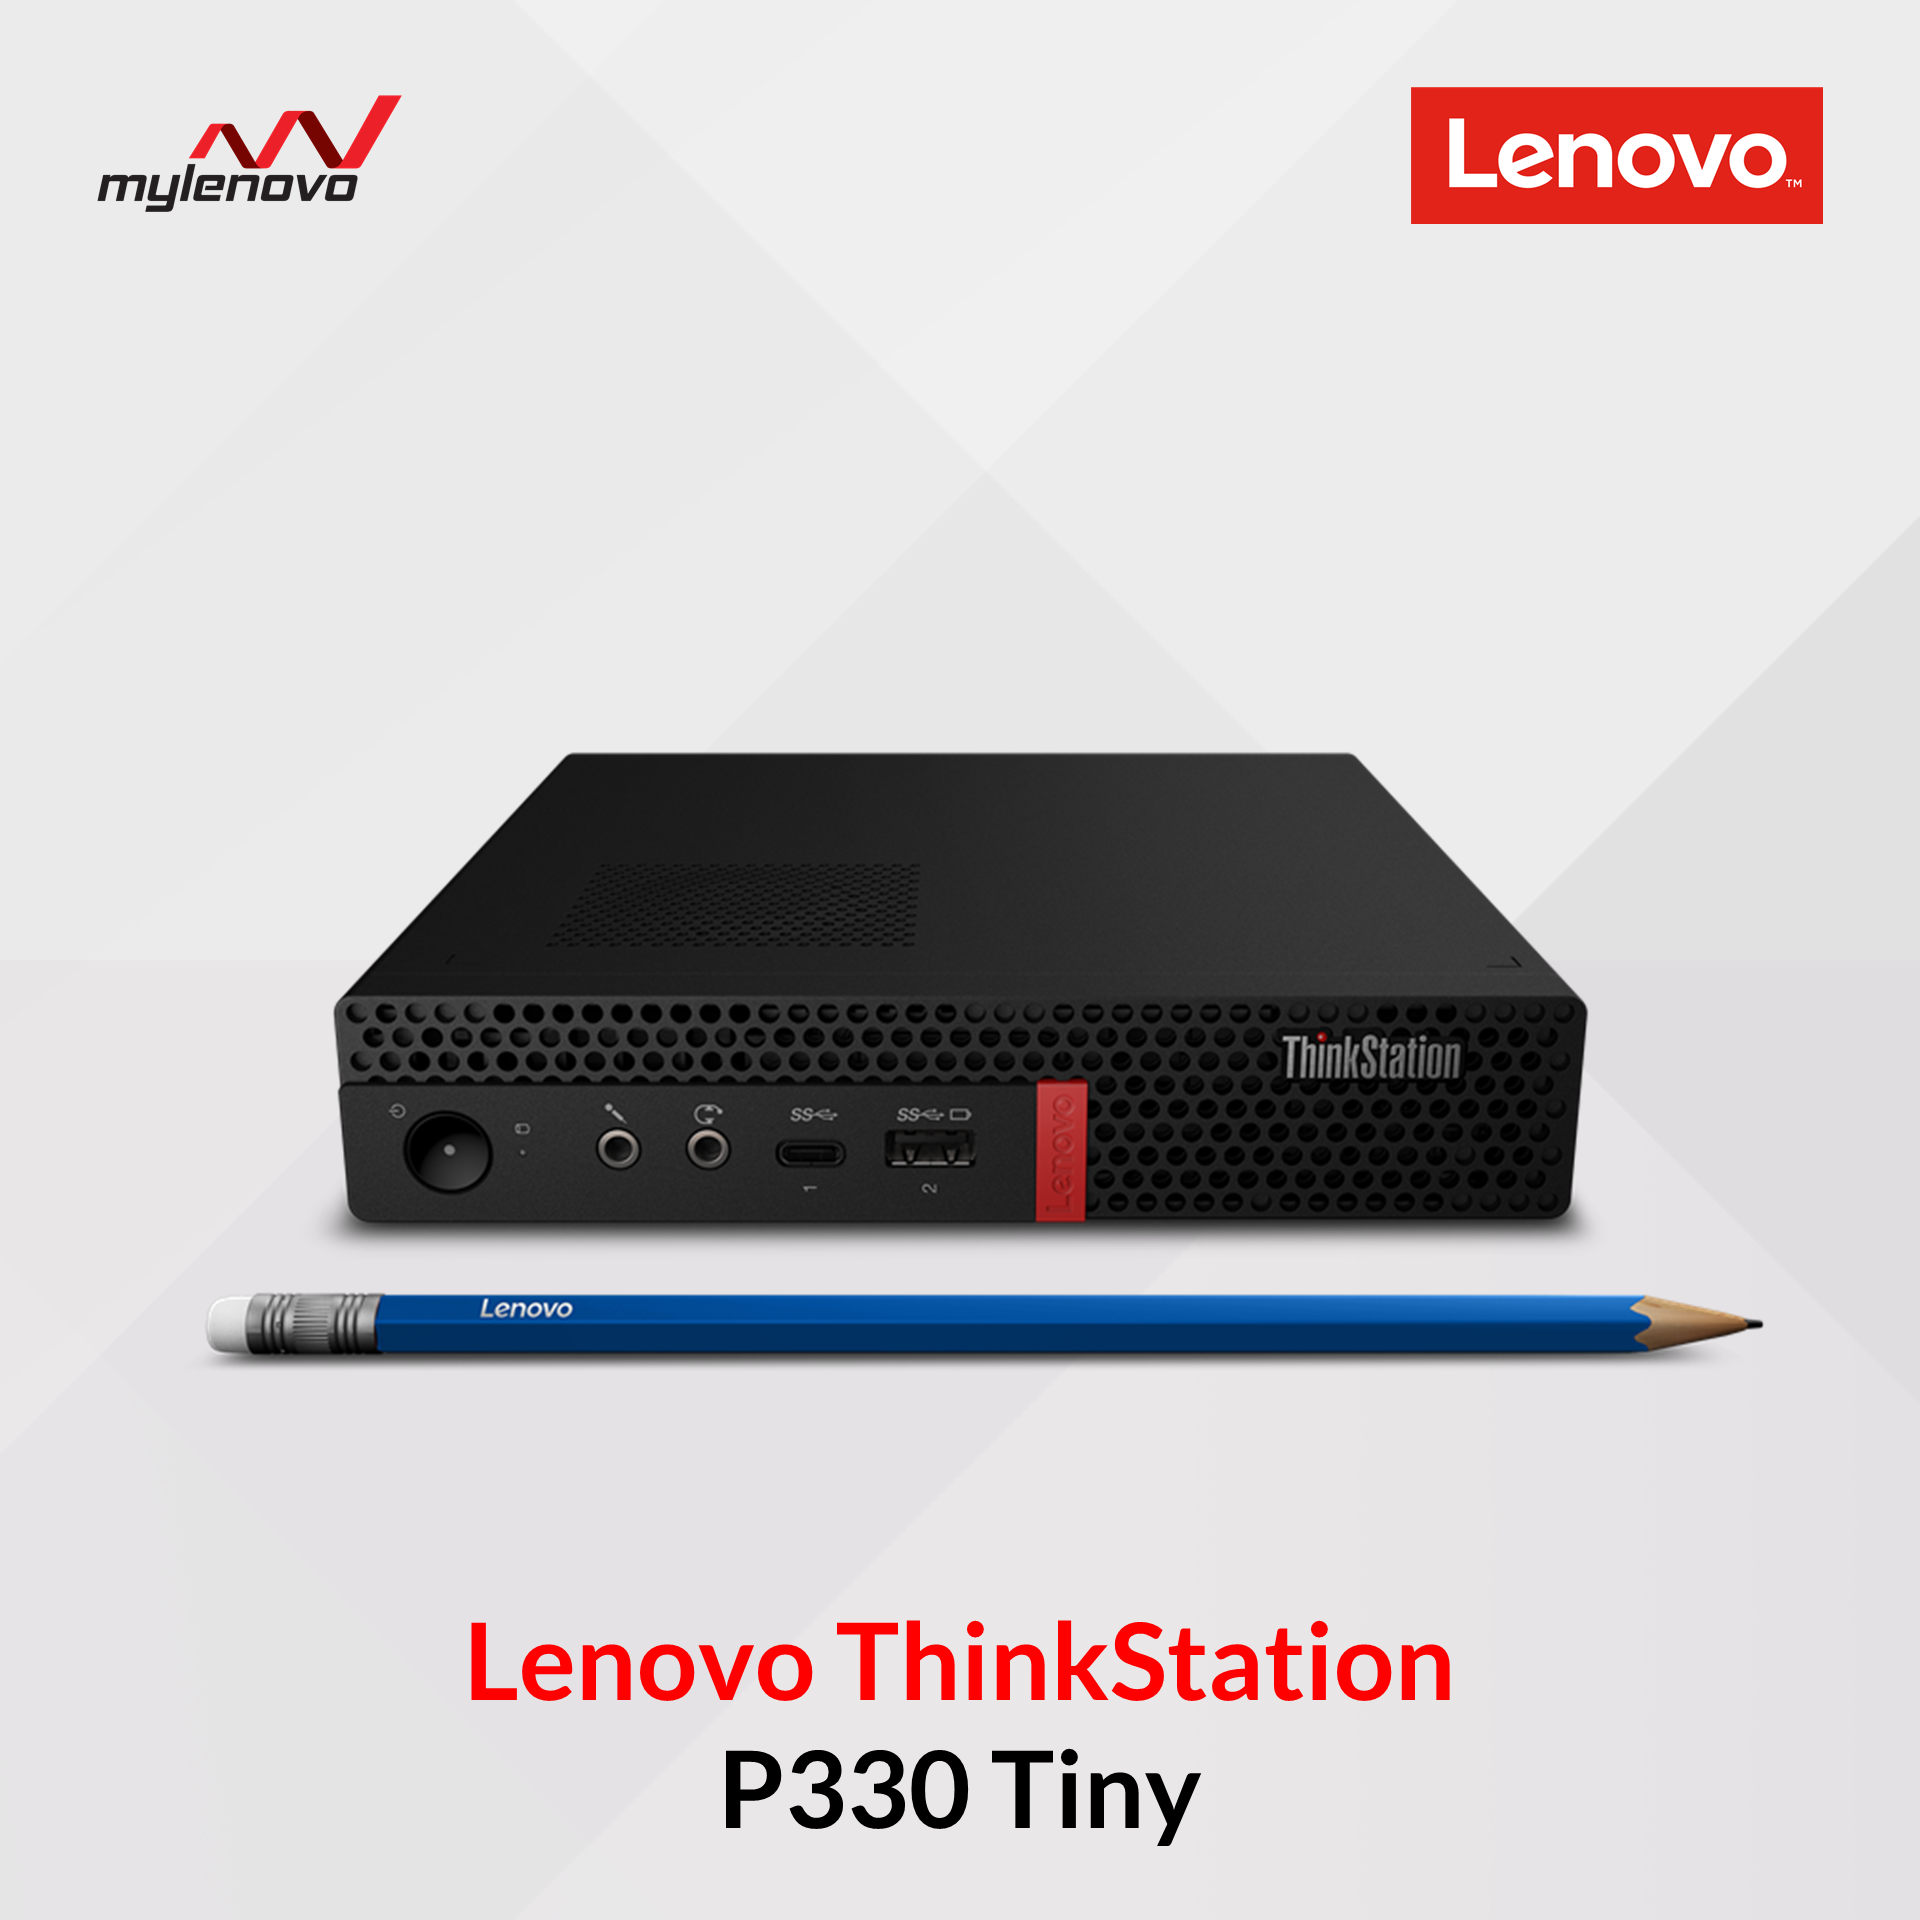 Lenovo ThinkStation P330 Tiny Desktop with Tiny-In-One 24 Gen 3 23.8\'\' Full HD Multi Touch Monitor (i3-8100/4GB/128GB)